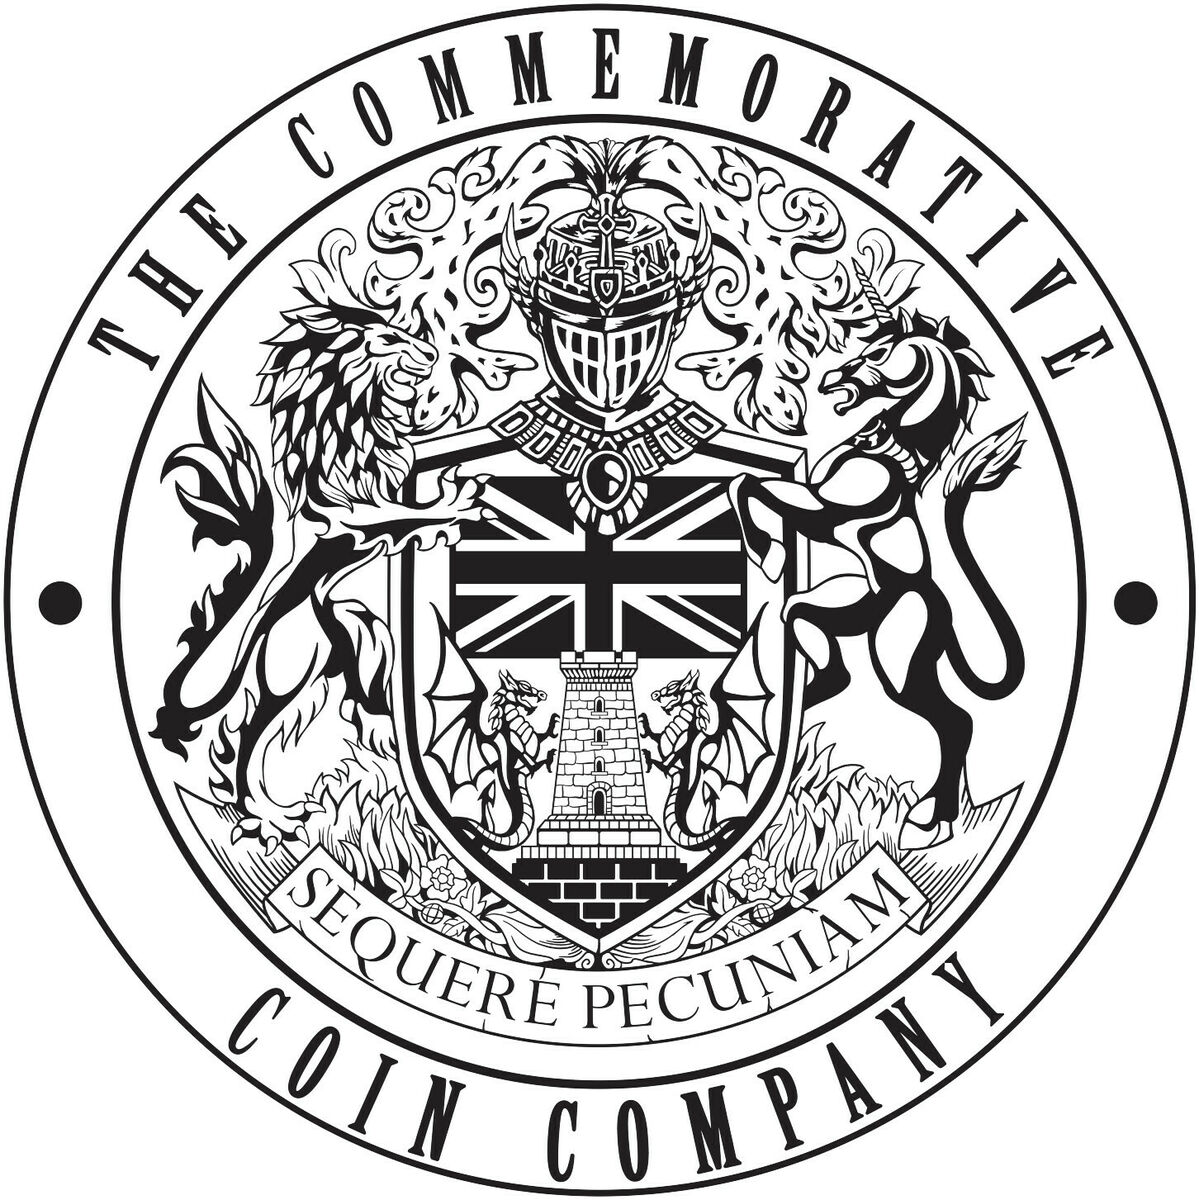 The Commemorative Coin Company